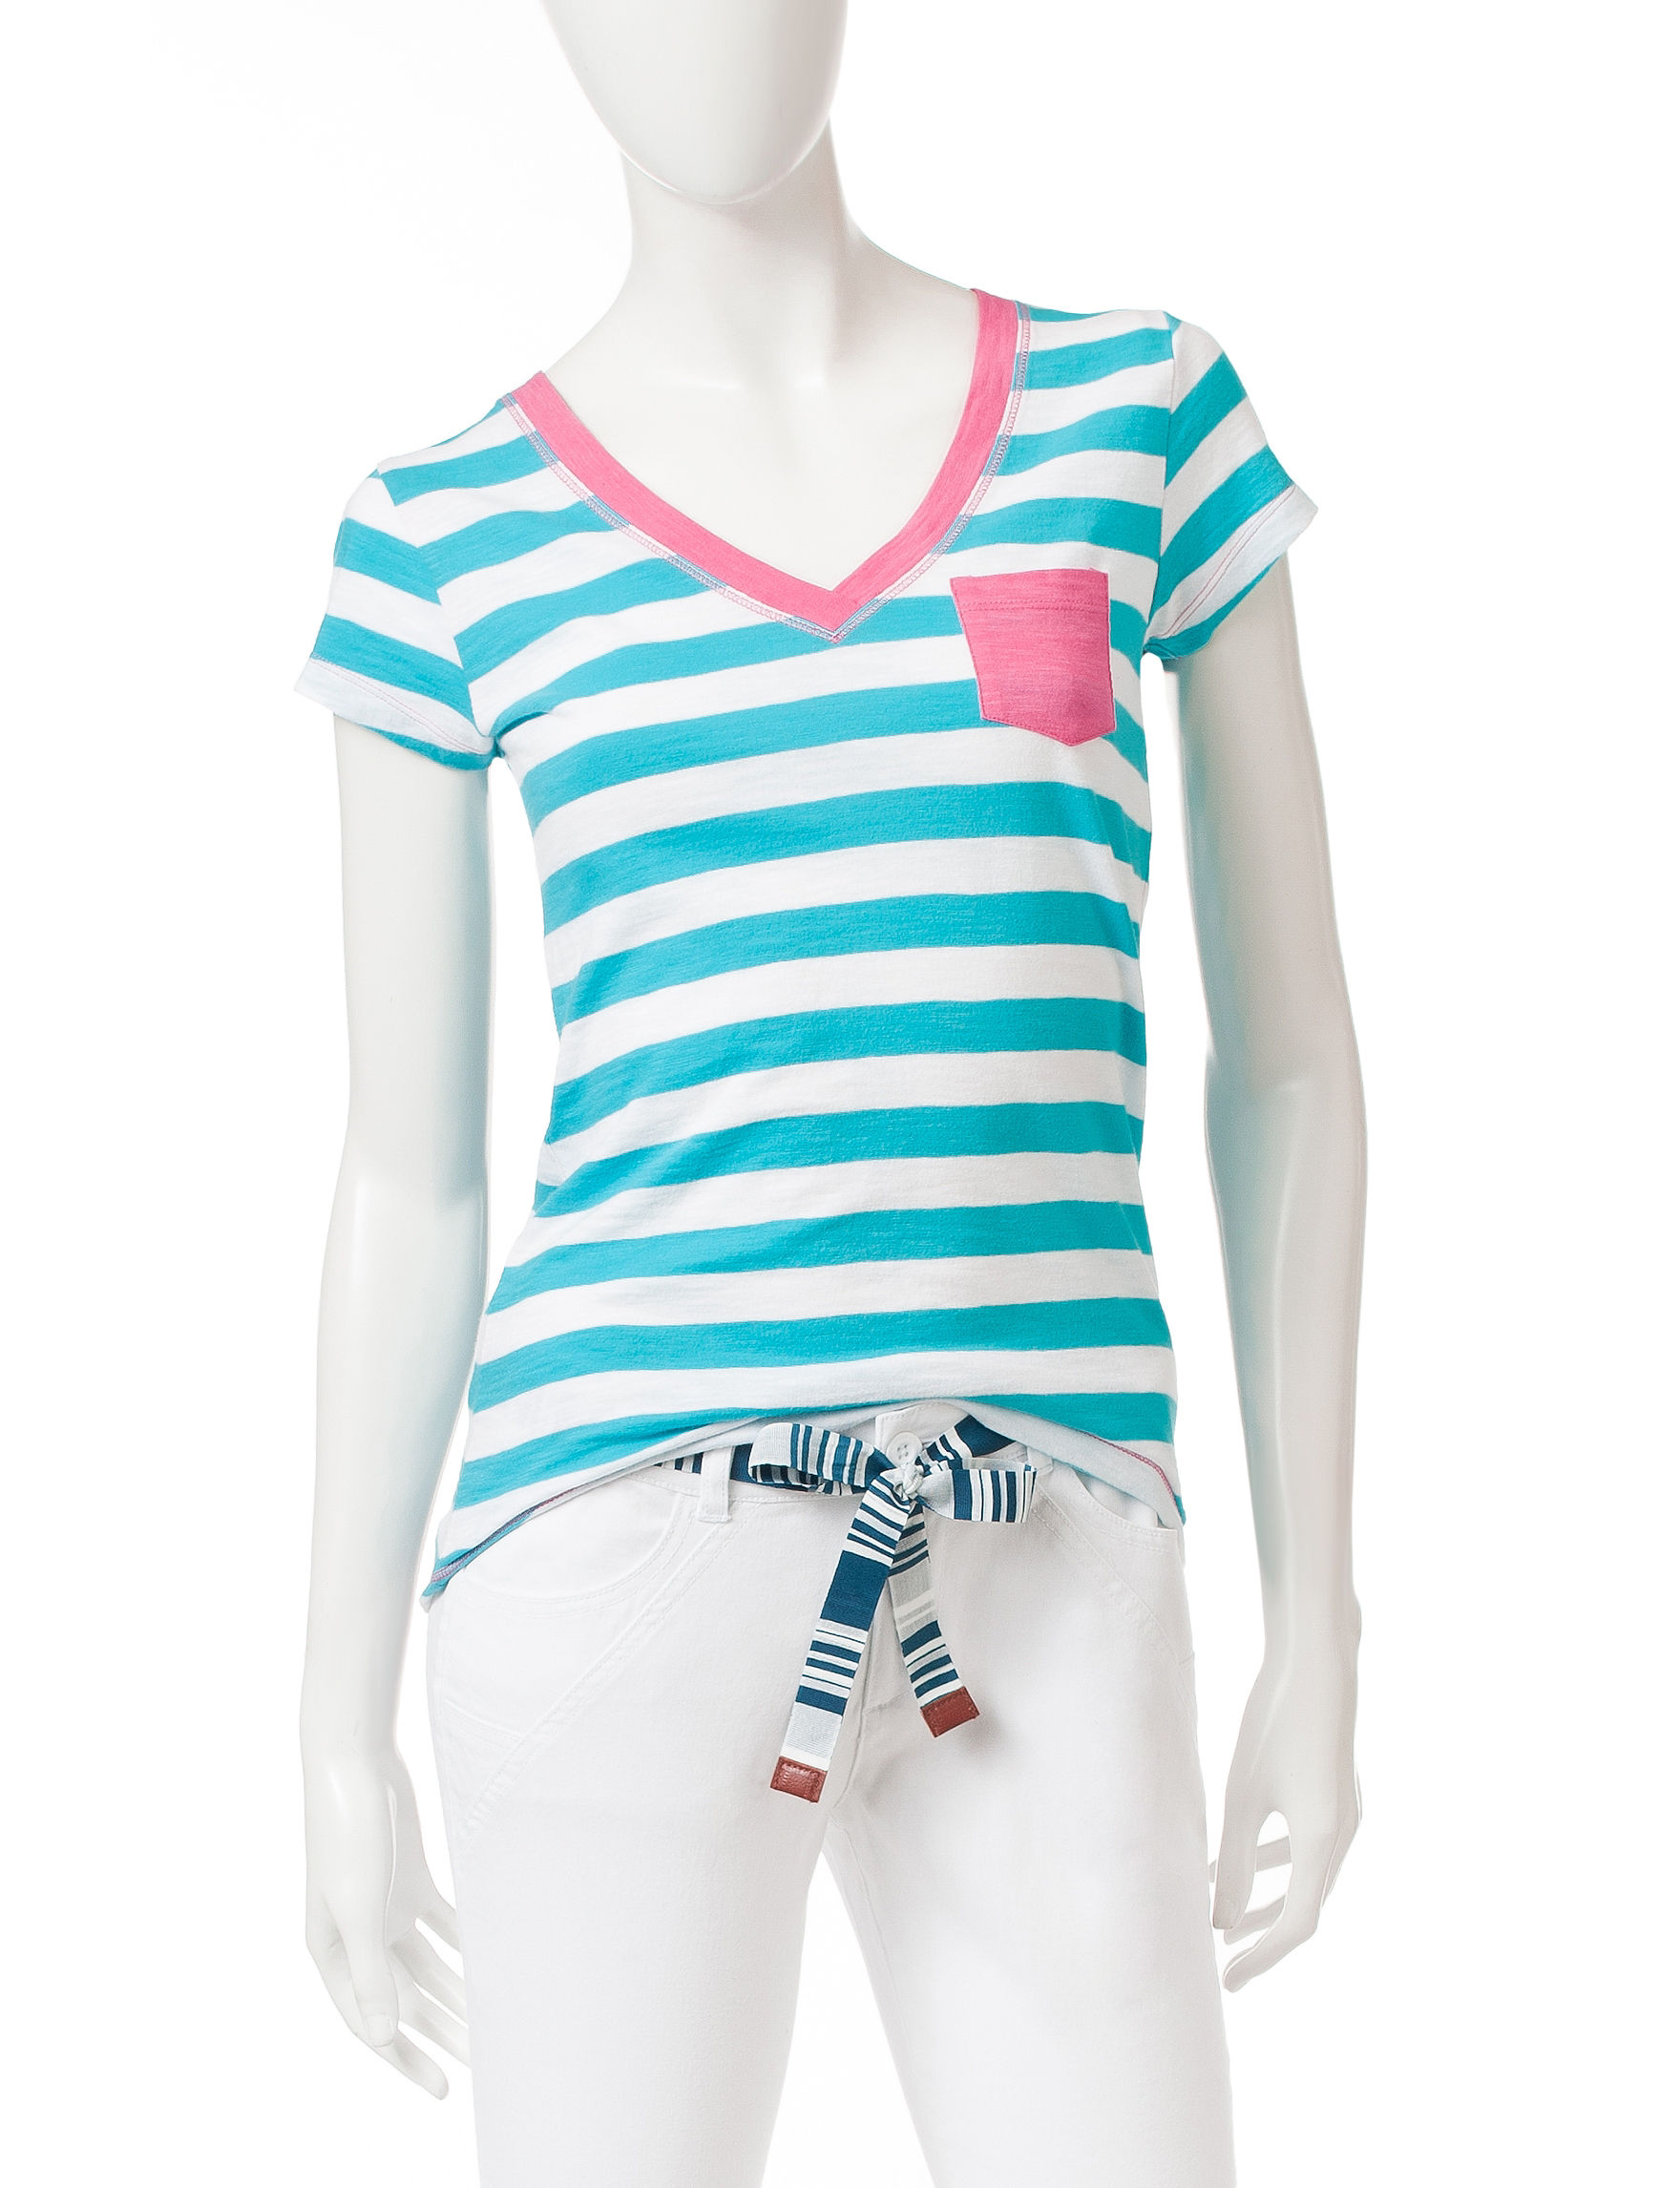 Wishful Park Blue Stripe Tees & Tanks